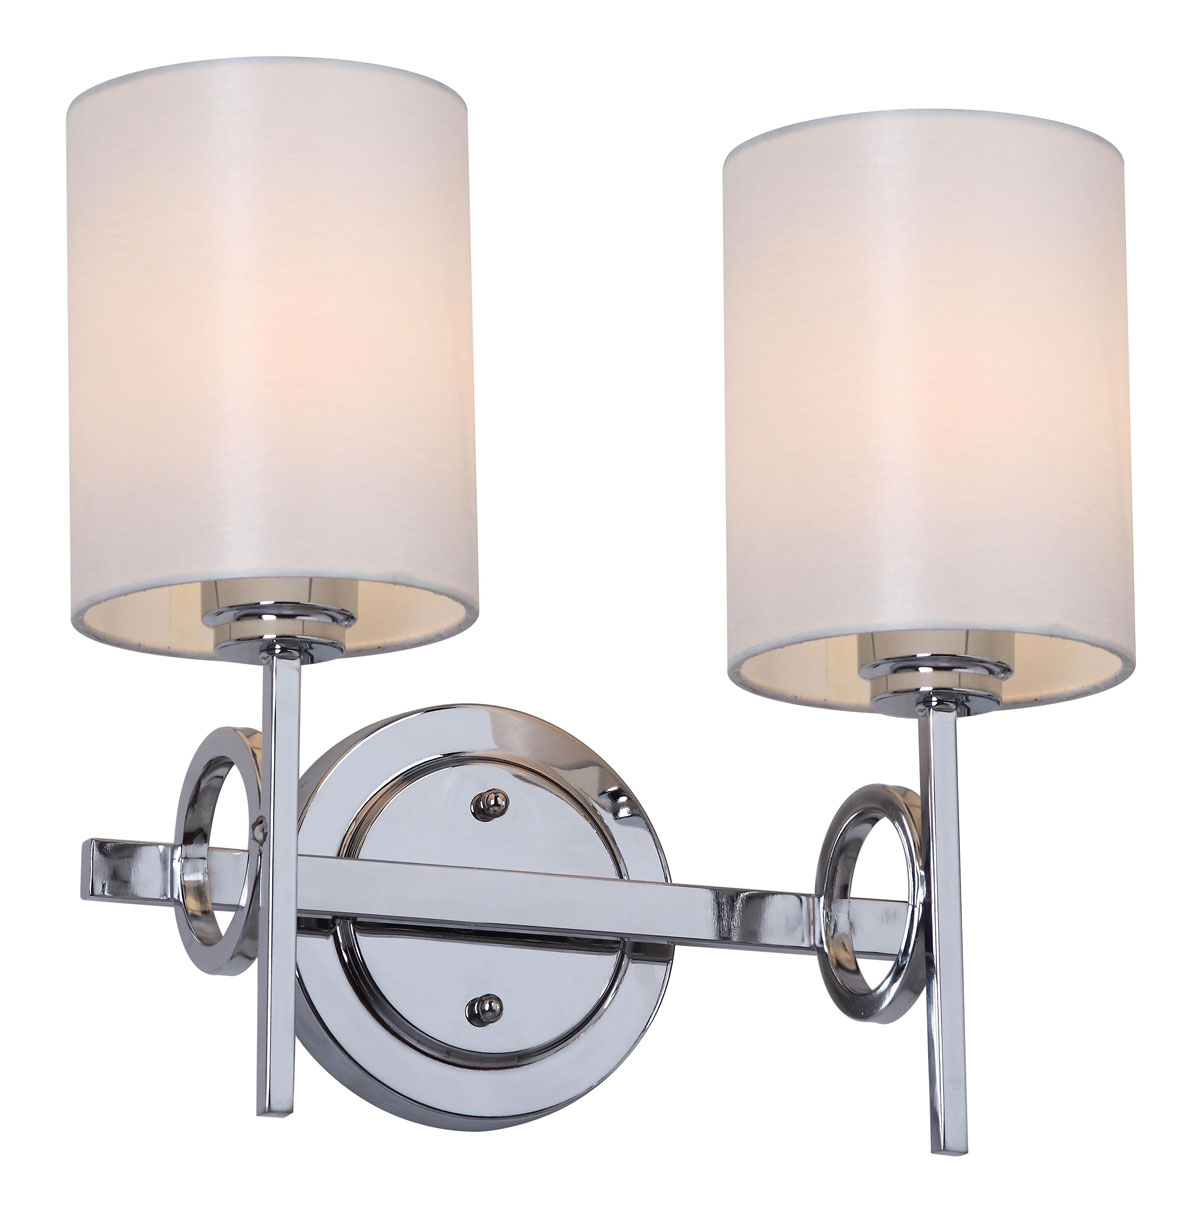 Lit4209a sconces lighting by safavieh